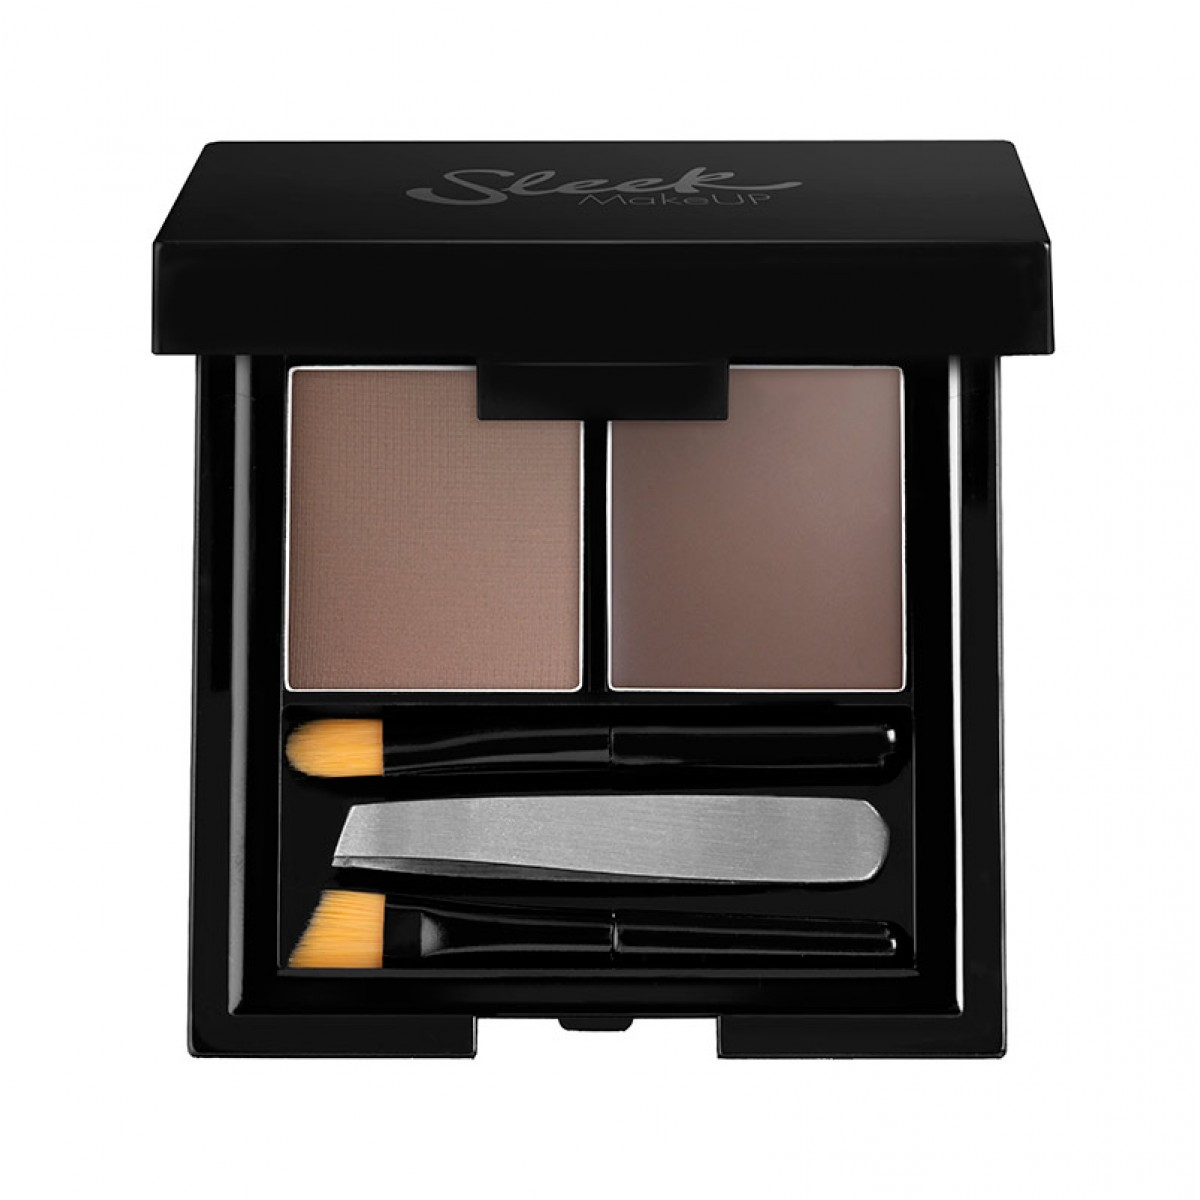 brow-kit-dark_1